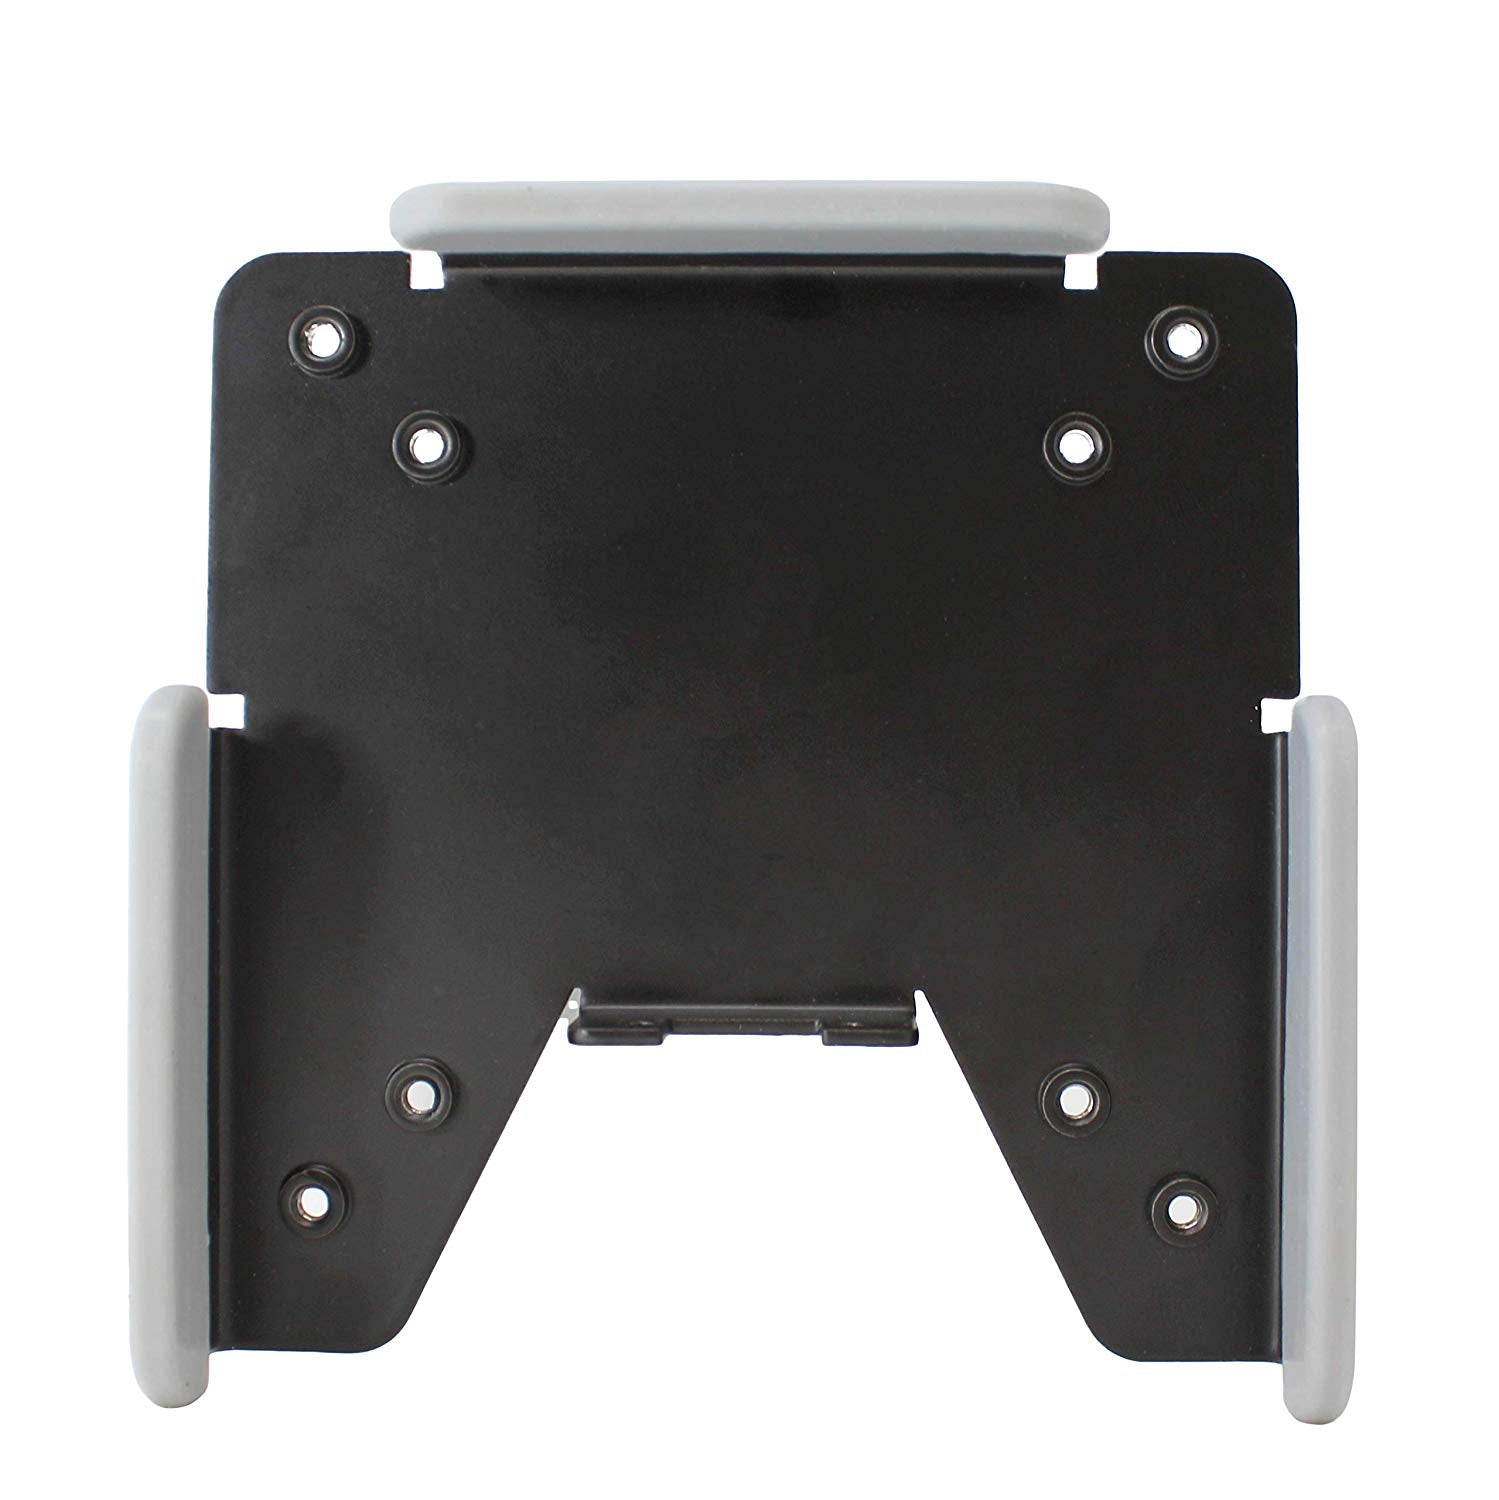 VESA Mount Adapter for Dell Ultrathin S2419HM and S2719DM Monitors